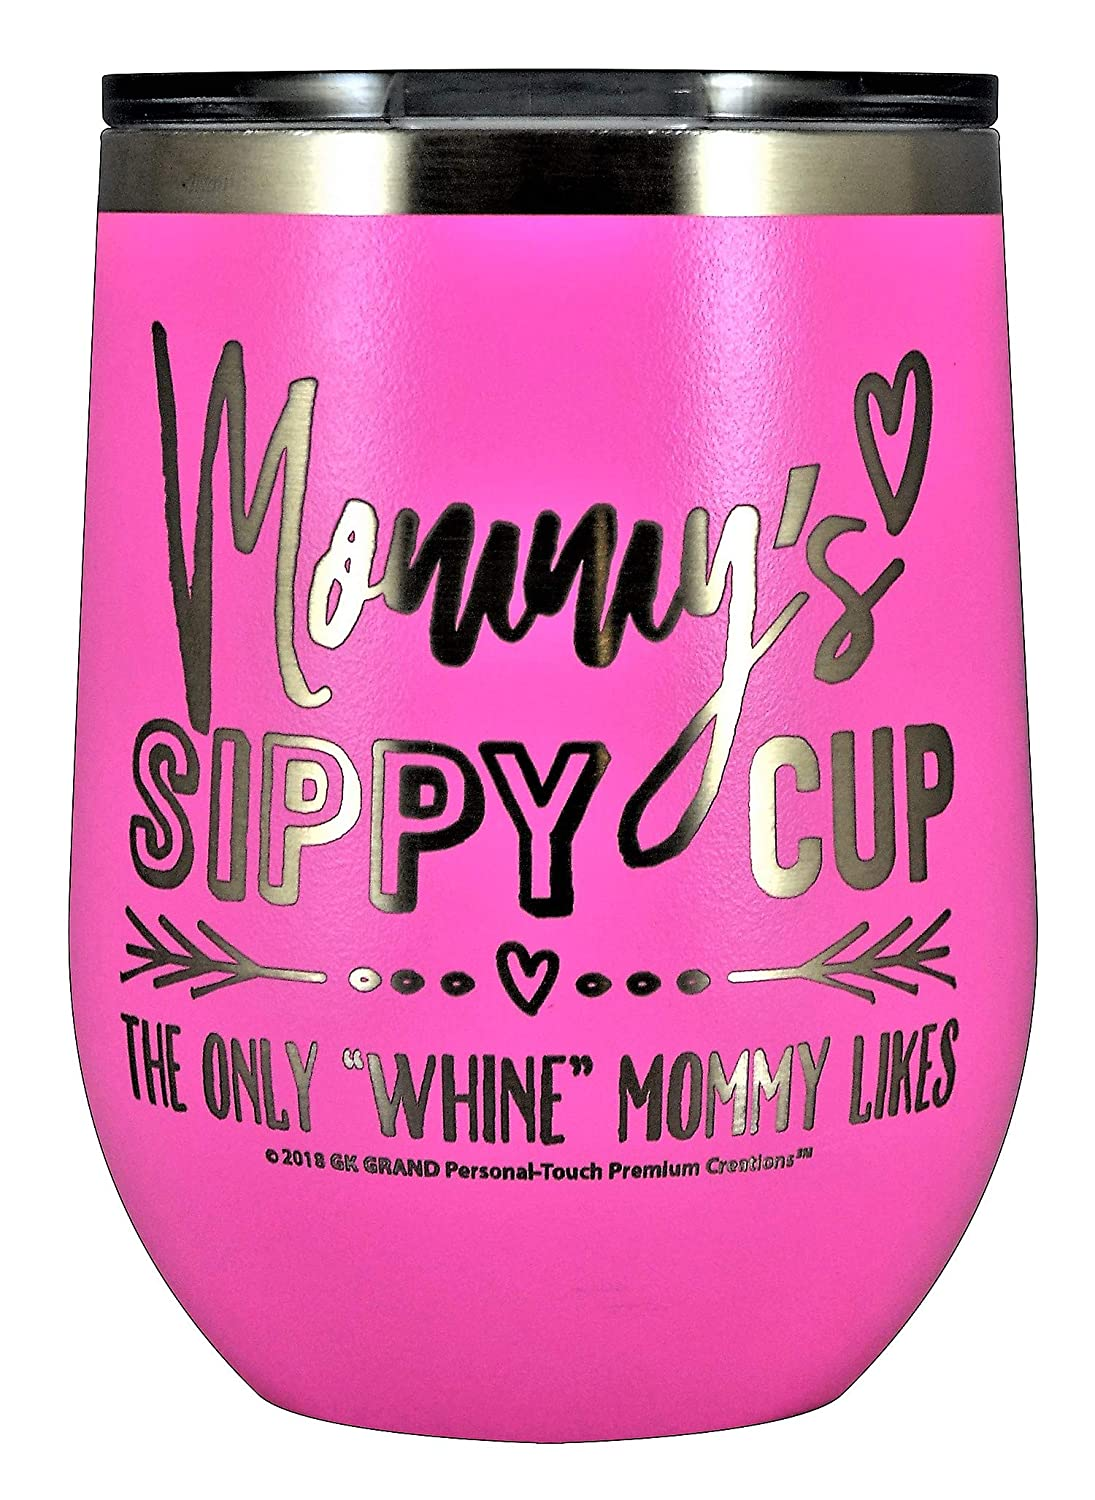 MOMMYS SIPPY CUP WINE GLASS GIFT TUMBLER Engraved Stainless Steel Stemless Wine Tumbler 12 oz Vacuum Insulated Travel Coffee Mug Hot Cold Drink Mothers Day Christmas Birthday Mom Black